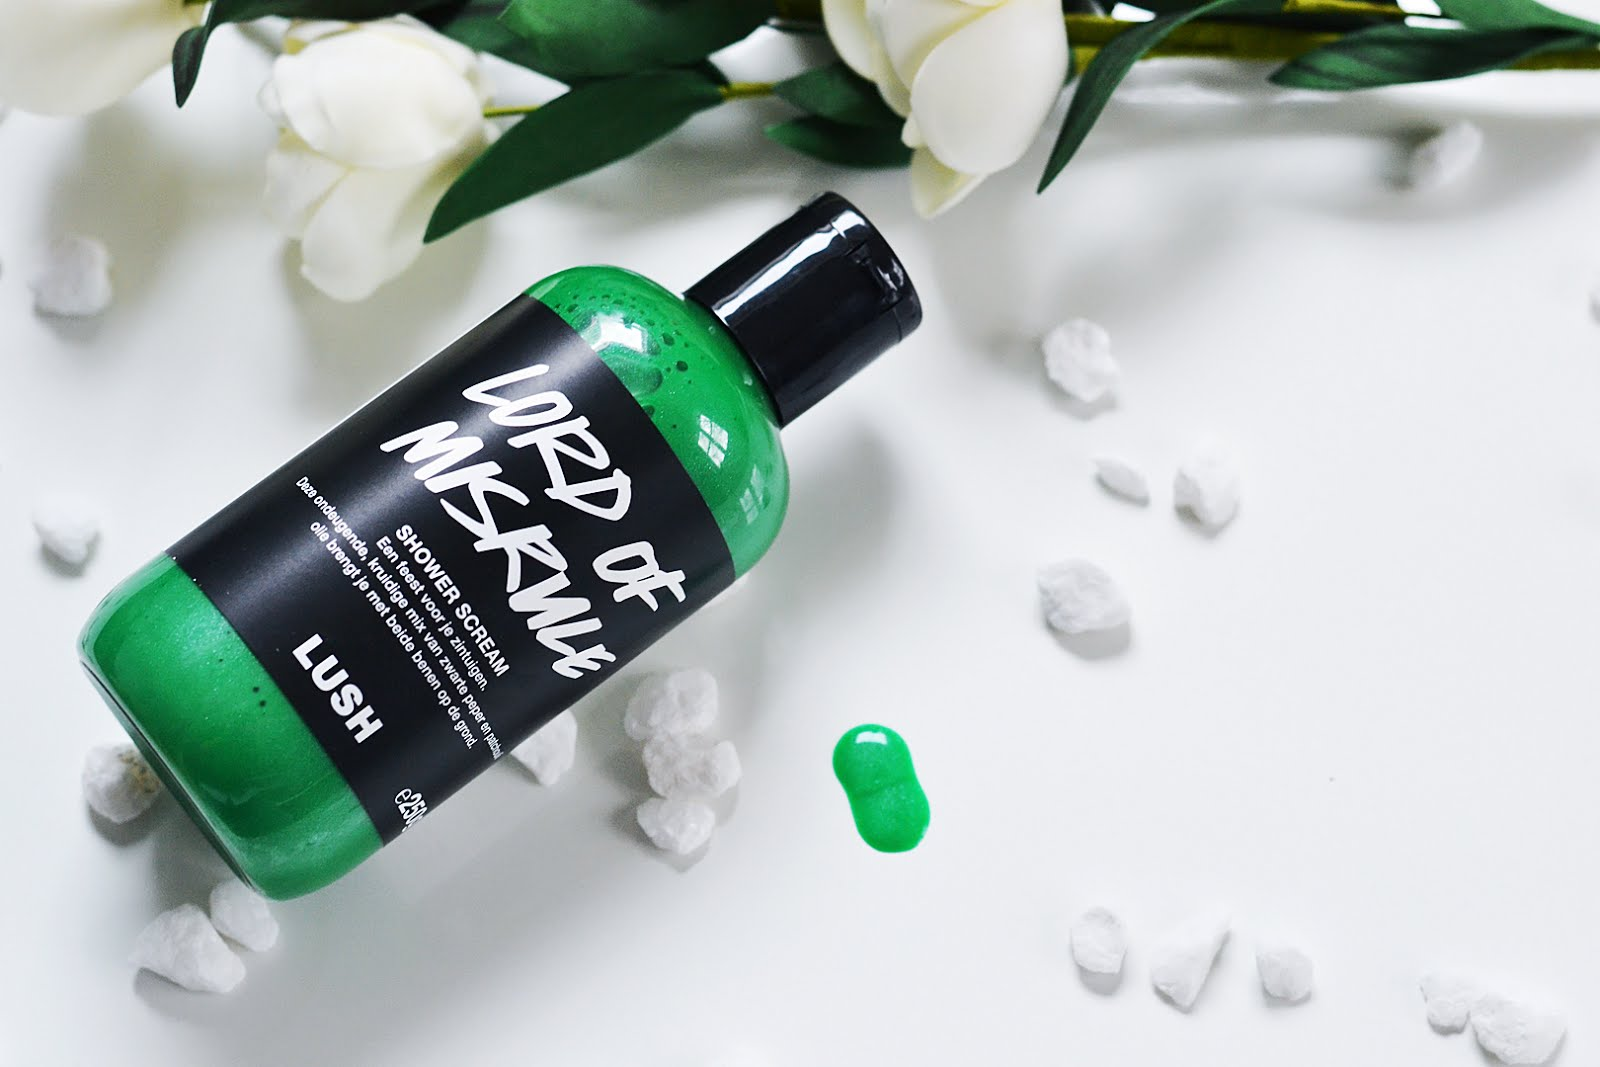 Lush, lord of misrule, shower gel, belgian fashion blogger, belgische mode blogger